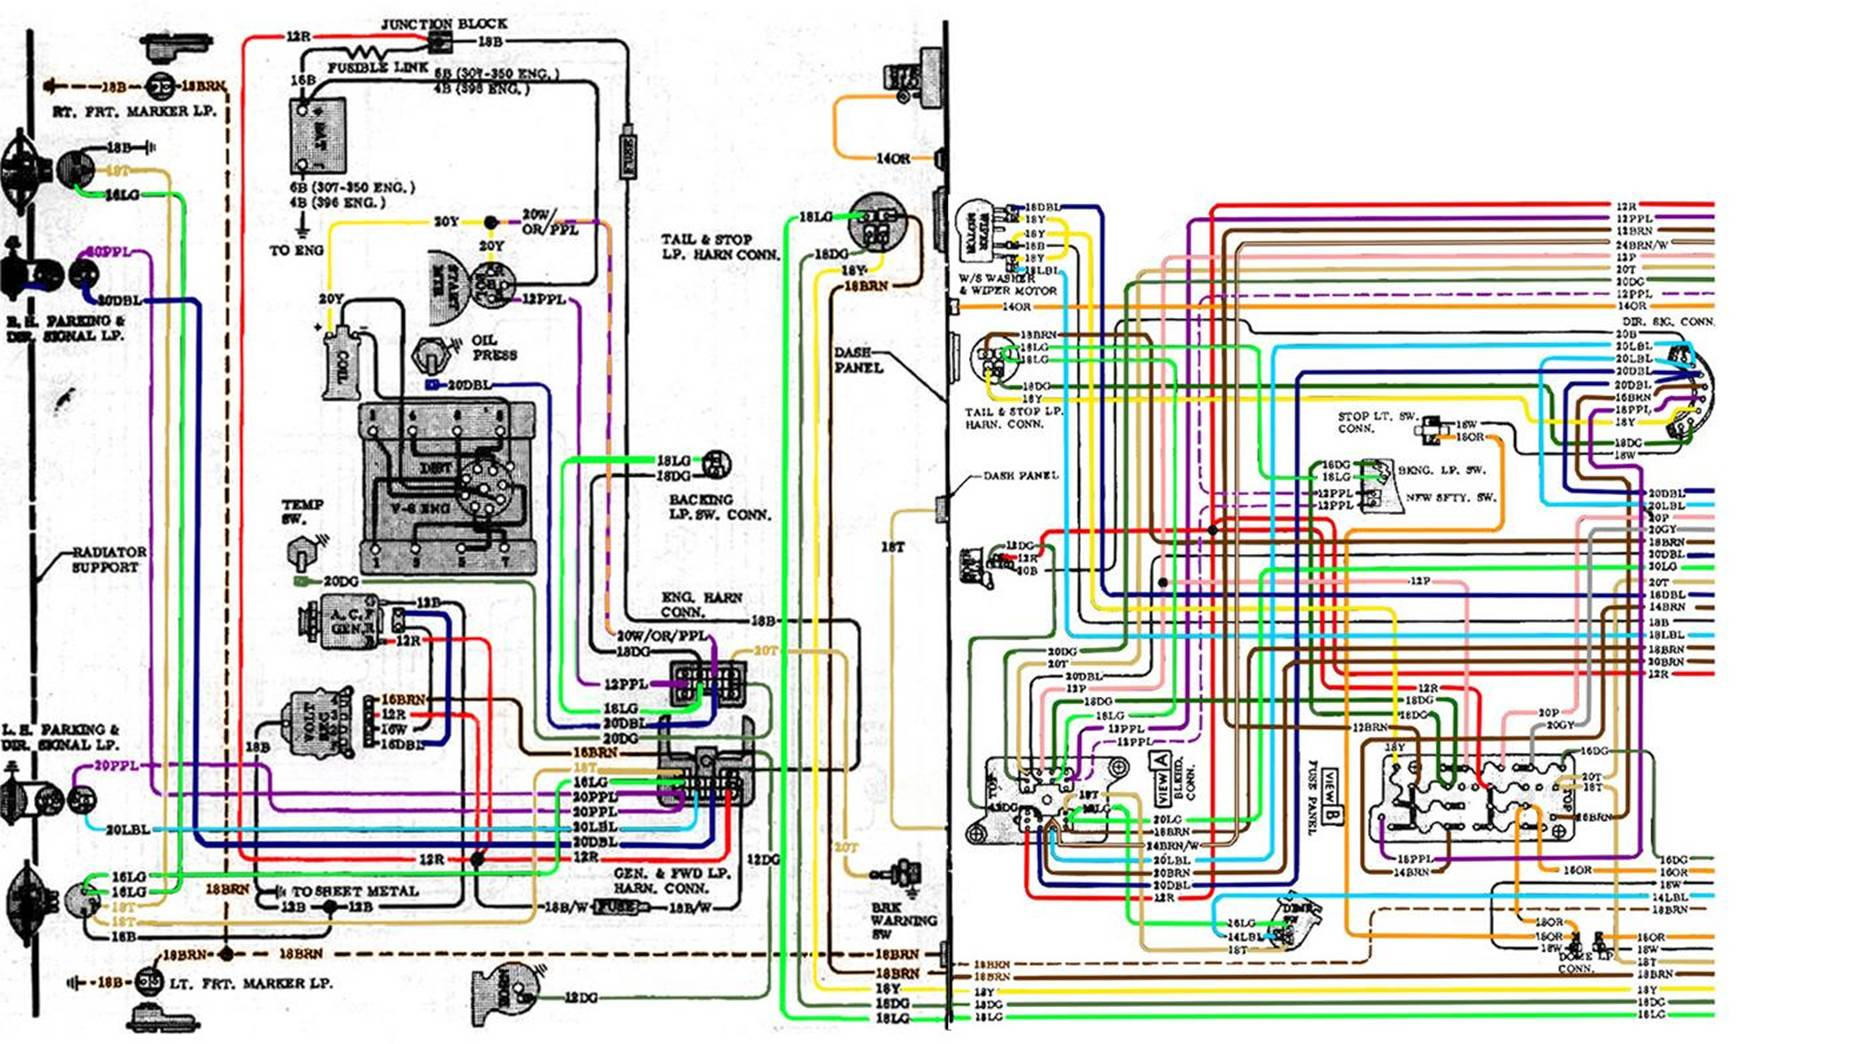 hight resolution of 72 chevy wiring diagram data wiring schema 66 el camino wiring diagram 1968 el camino